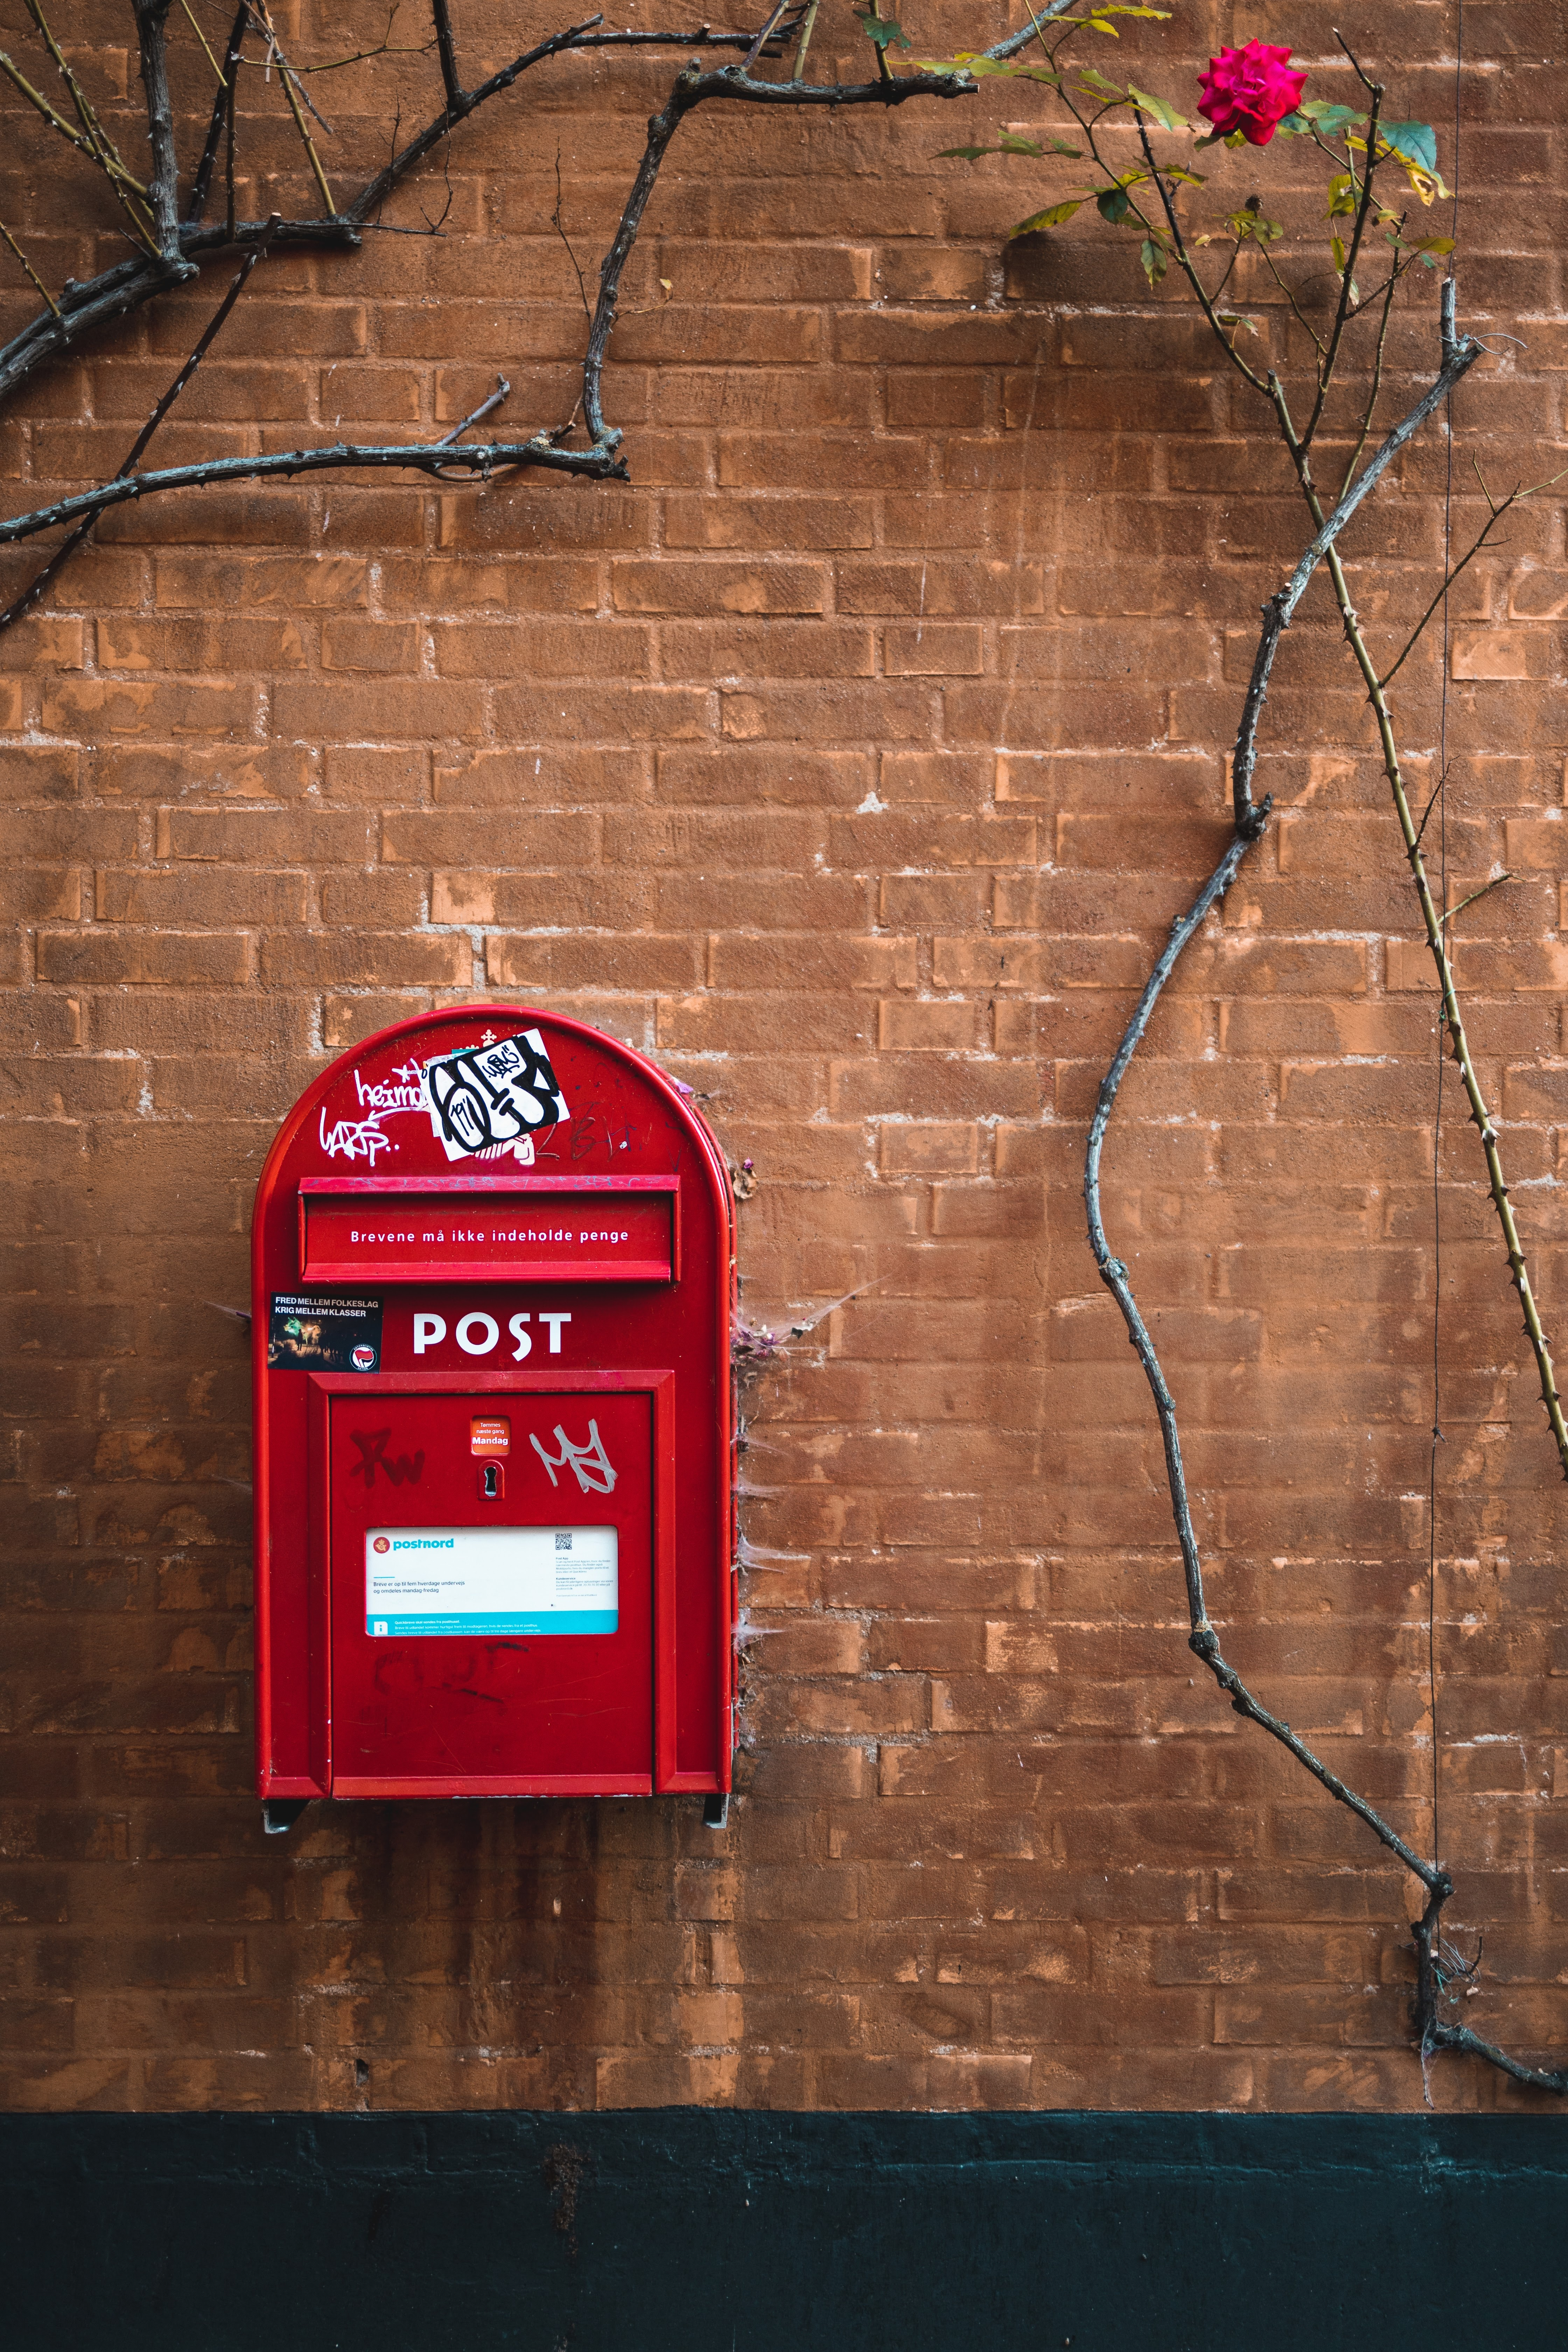 133806 download wallpaper Miscellanea, Miscellaneous, Post Office, Mail, Box, Wall, Brick Wall, Ivy screensavers and pictures for free